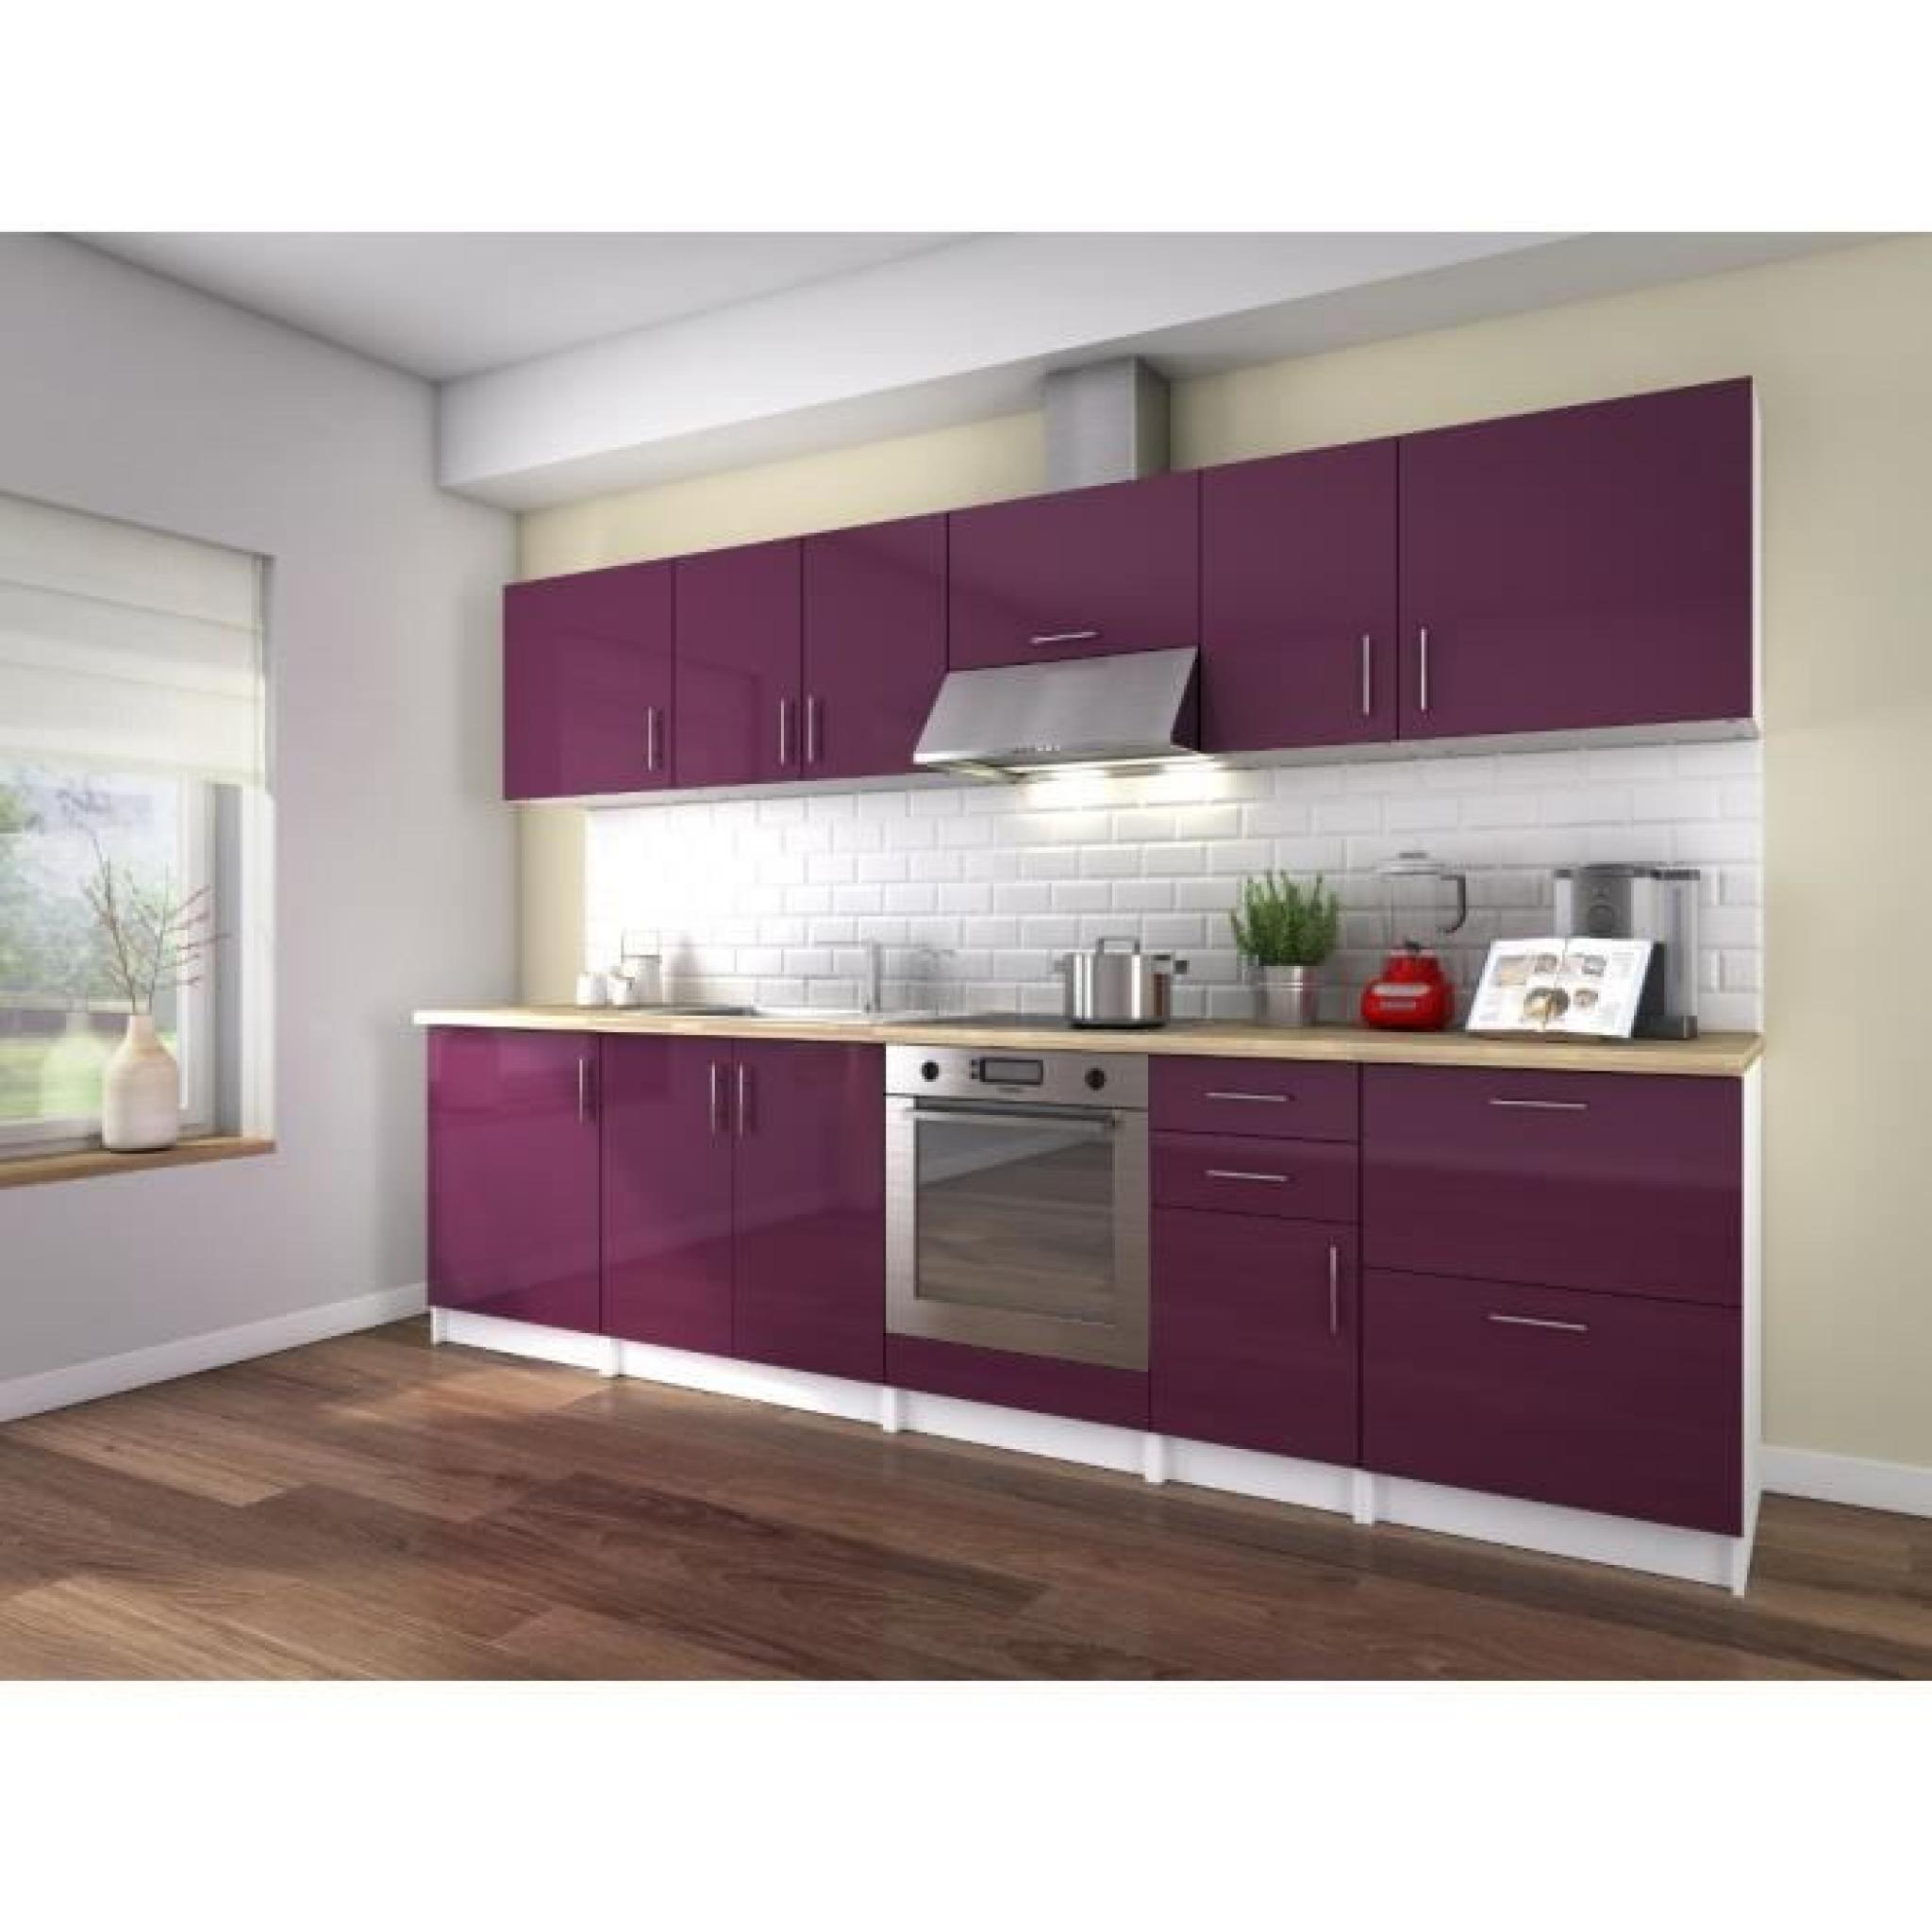 neo cuisine compl te 3m laqu aubergine haute brillance achat vente cuisine complete pas. Black Bedroom Furniture Sets. Home Design Ideas